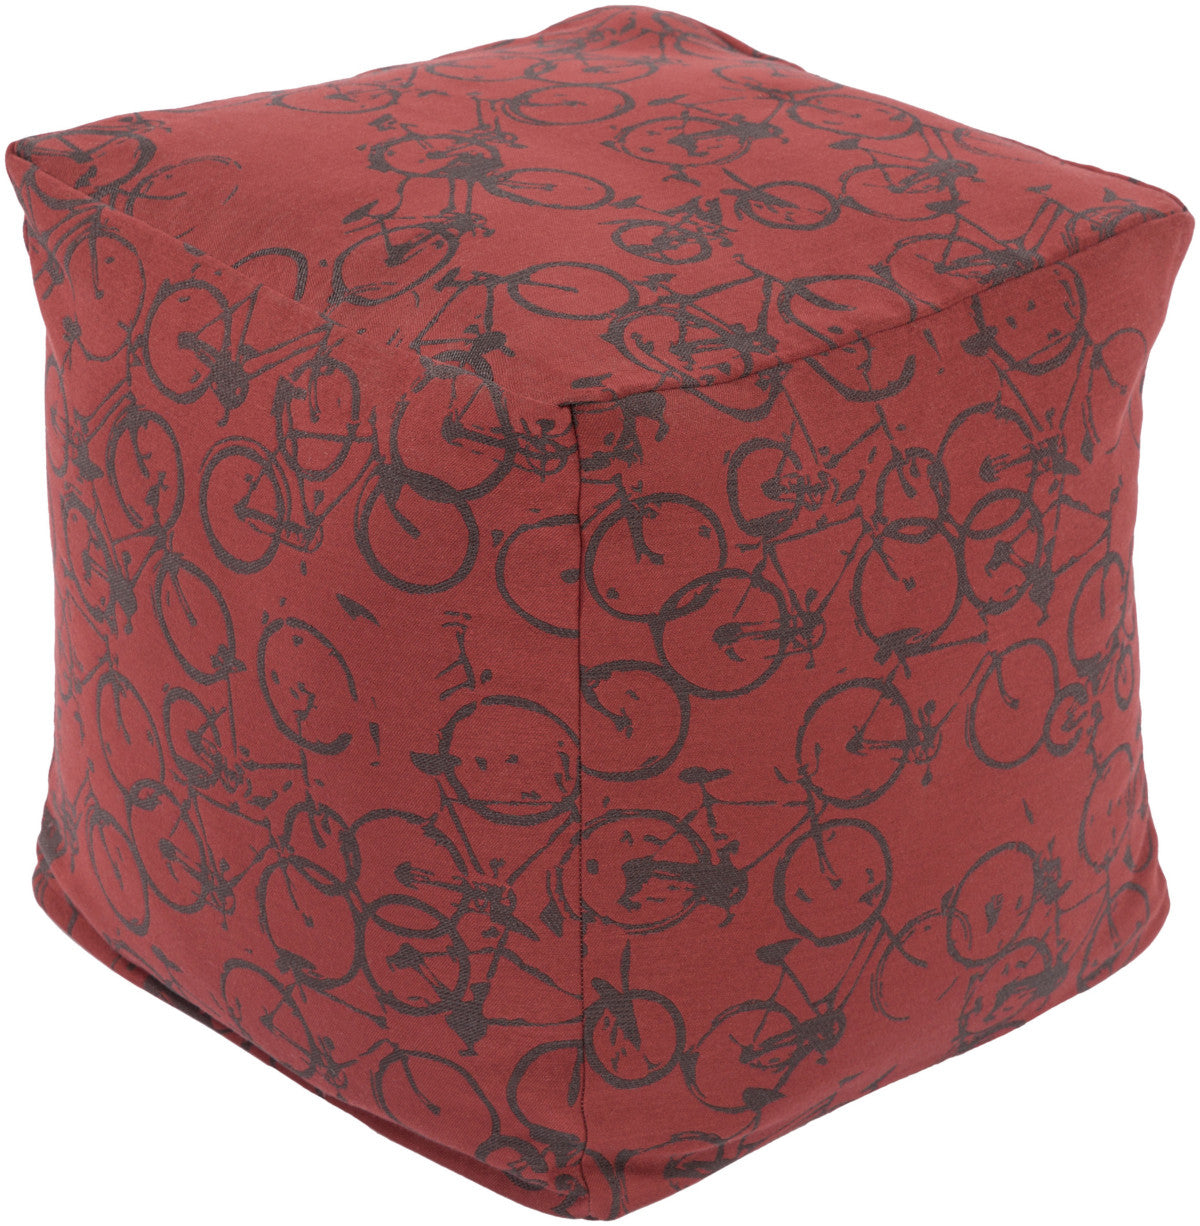 Surya Peddle Power PDPF-006 Red Pouf by Mike Farrell